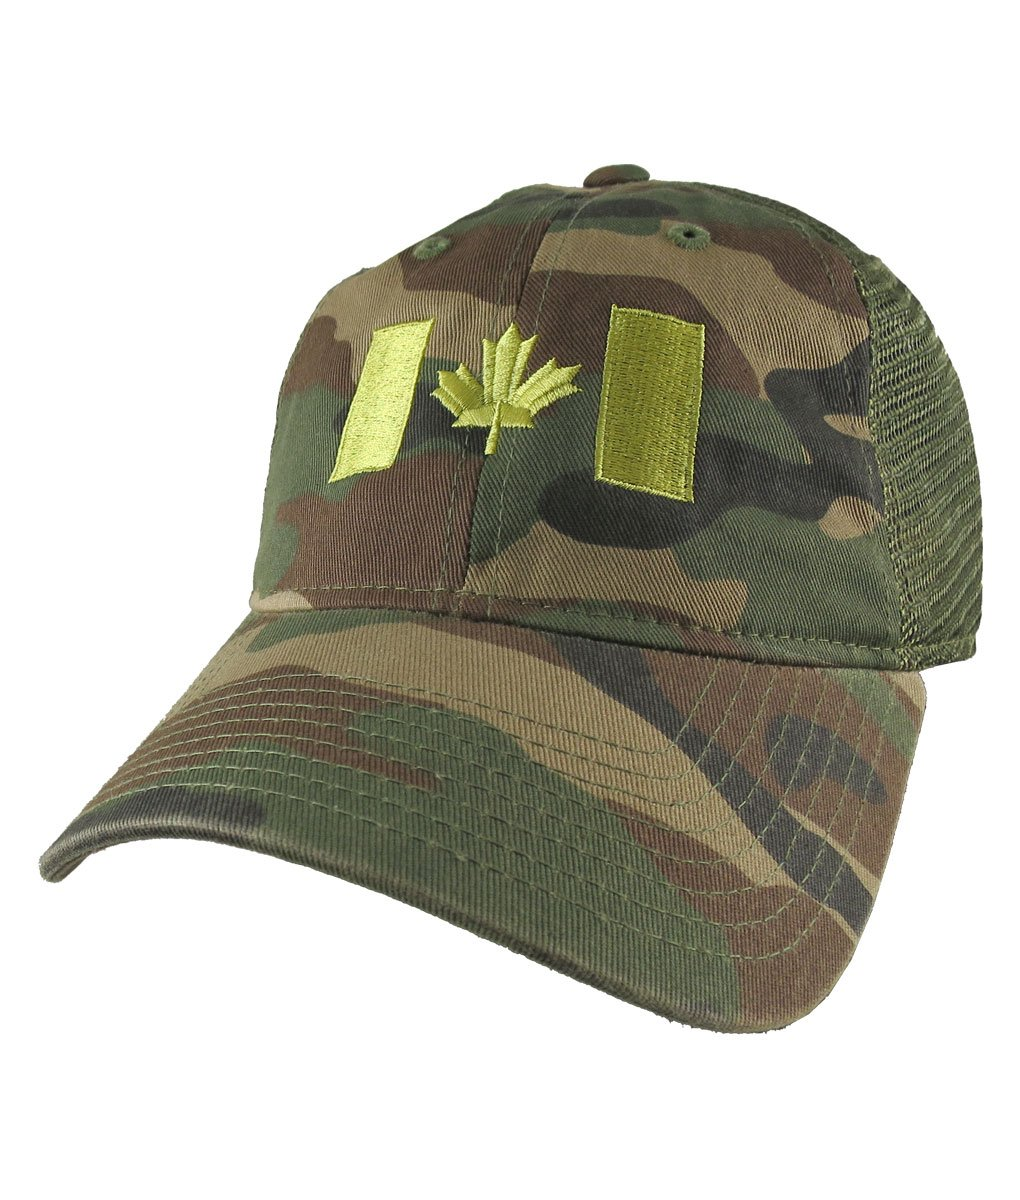 Canadian Flag Lime Green Embroidery on a Woodland Camouflage Unstructured Adjustable Classic Trucker Style Cap in Khaki green Back Mesh